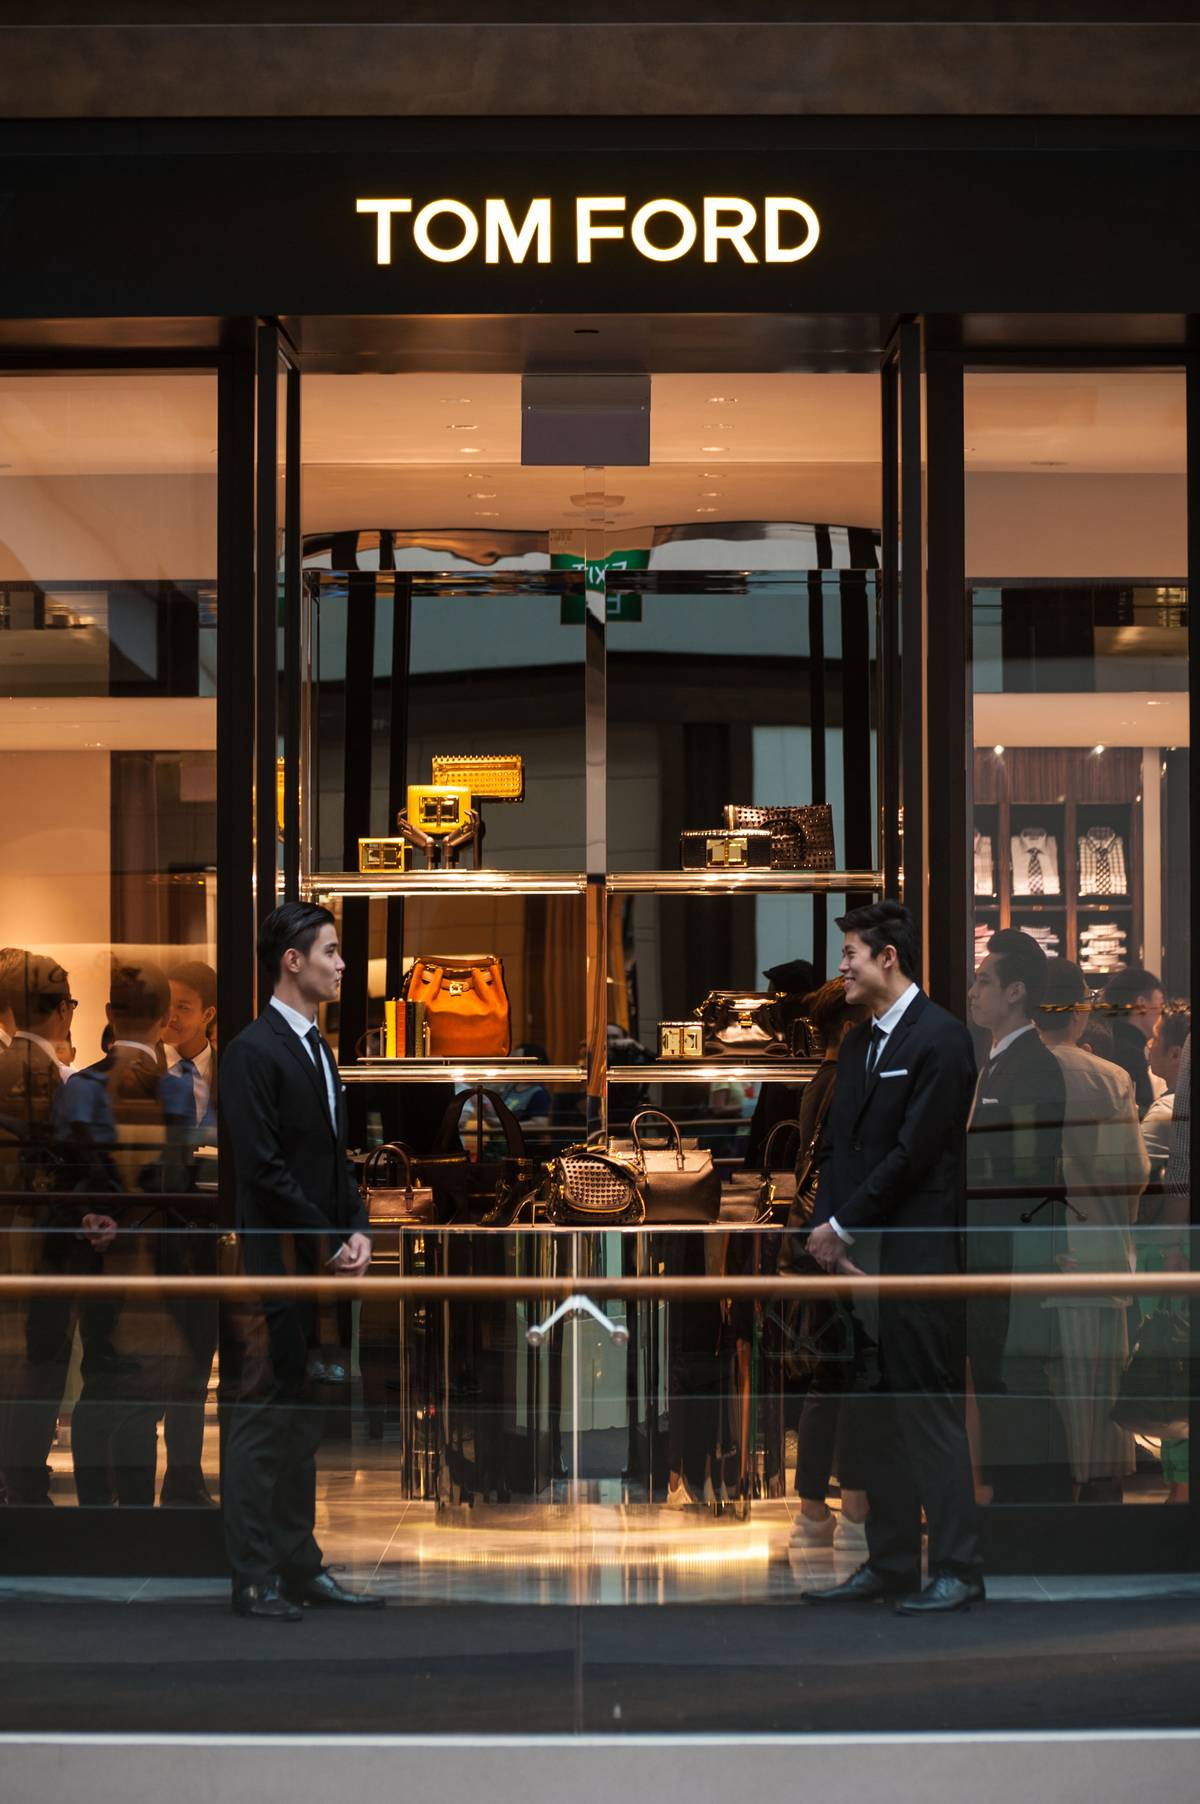 Tom Ford Opens 1st Store In South East Asia At Marina Bay Sands In Singapore Senatus